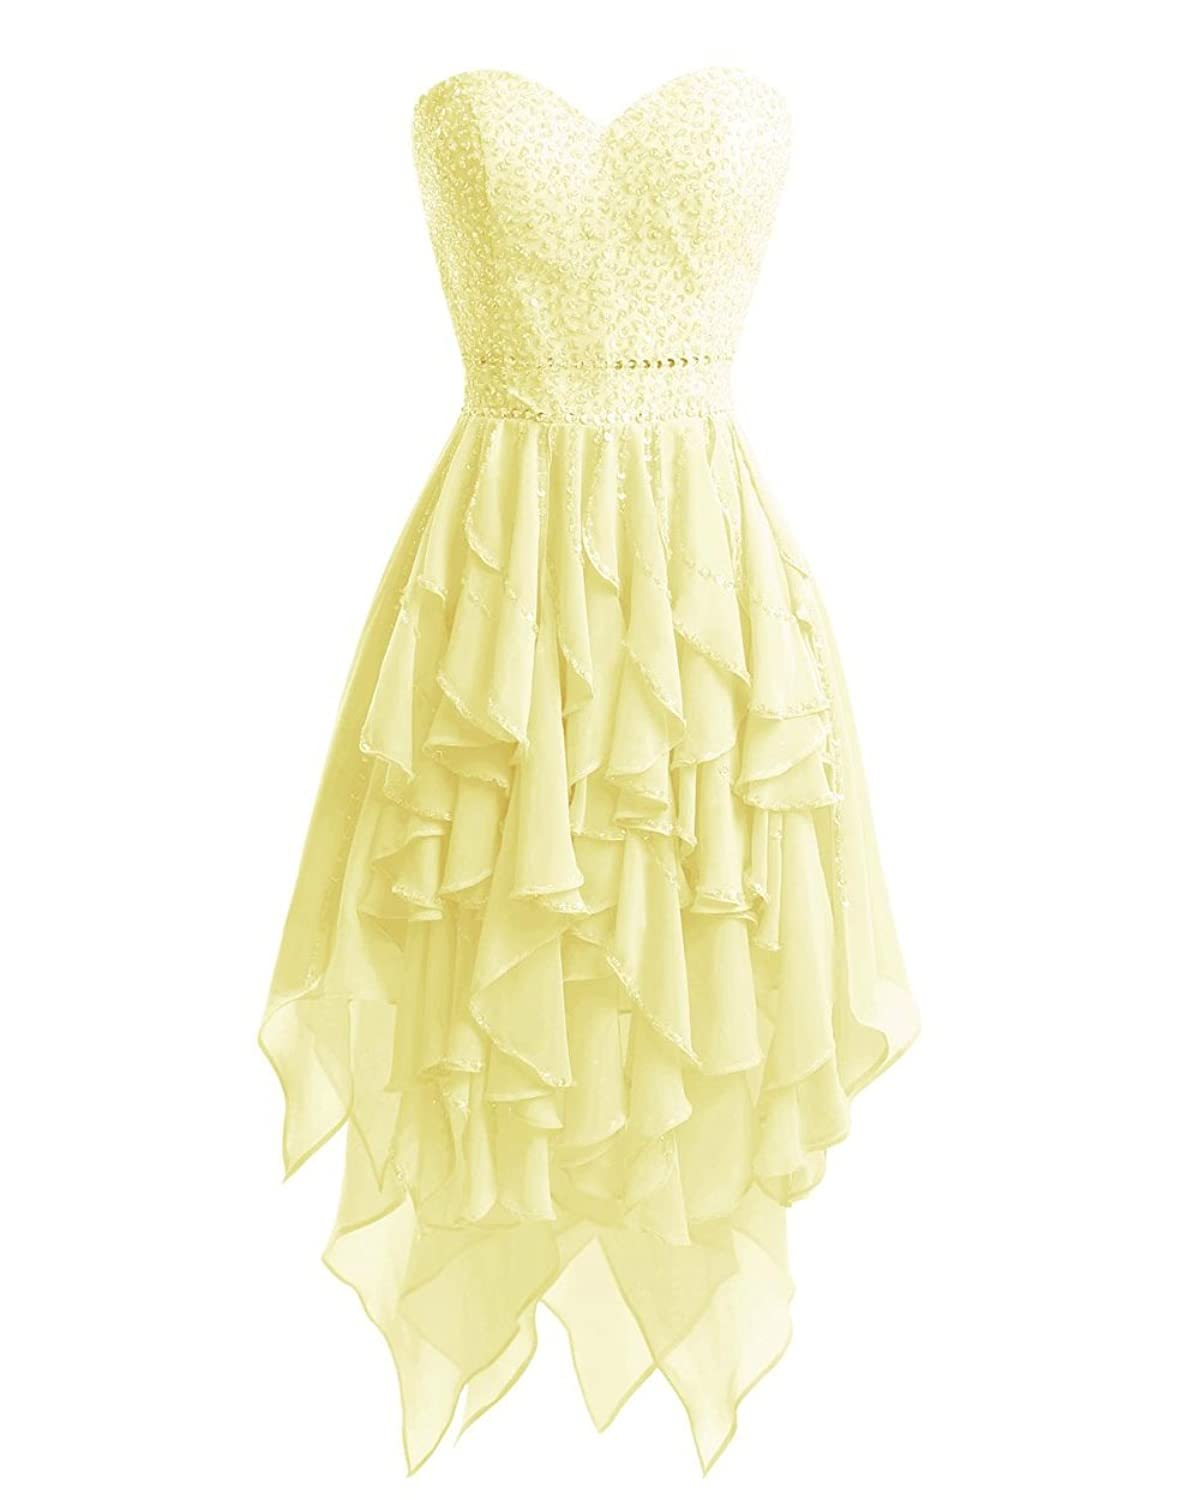 MorySong Sweetheart High Low Beaded Ruffles Short Prom Party Cocktail Dress